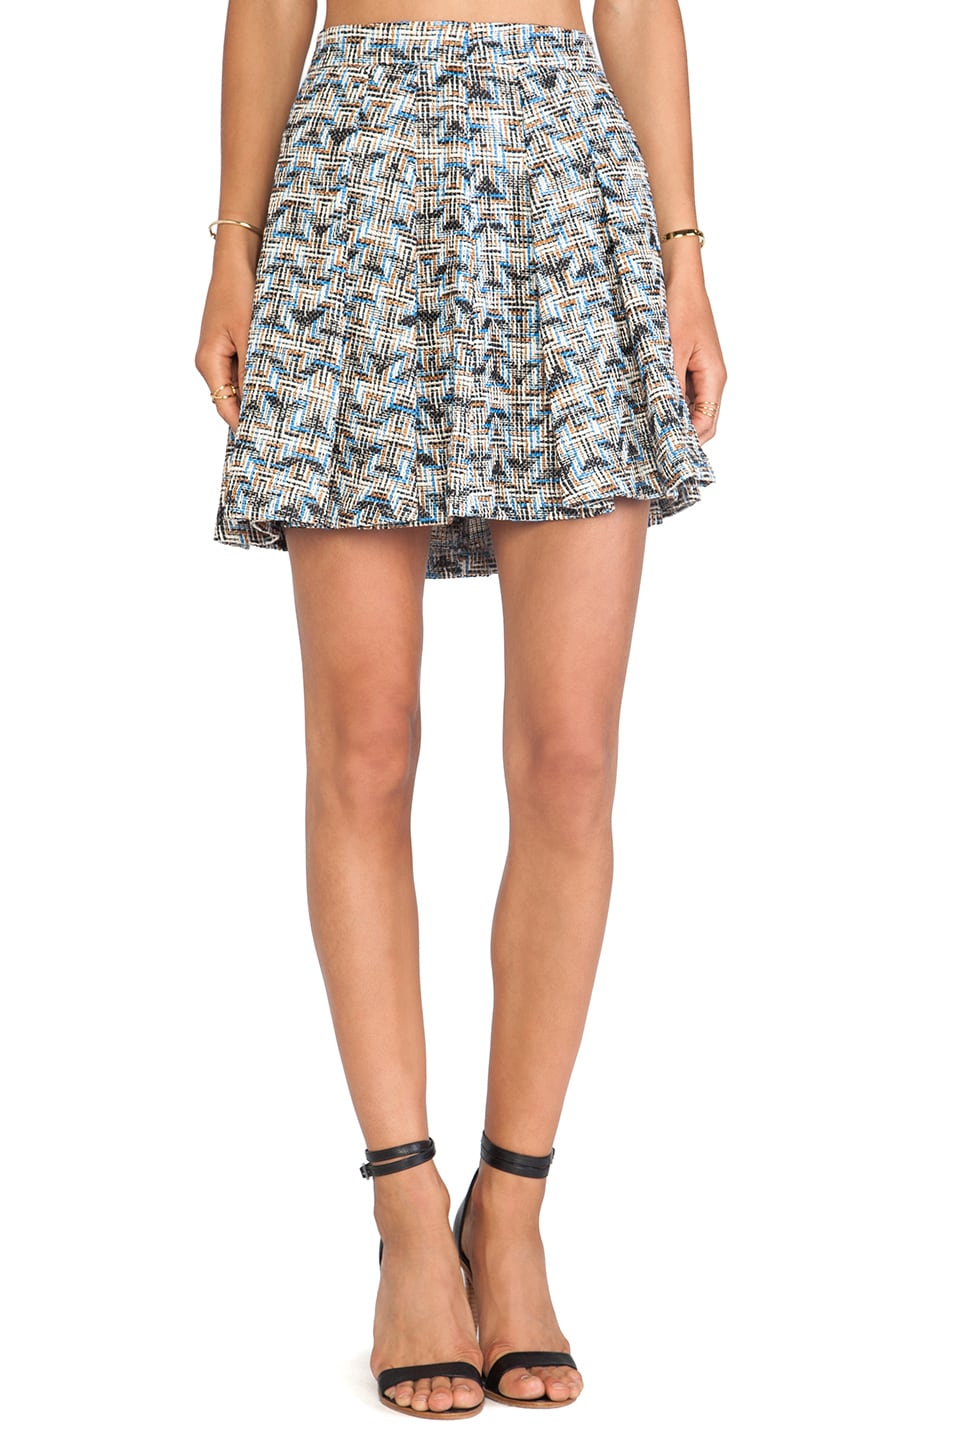 DEREK LAM 10 CROSBY Box Pleat Short Skirt in Blue Combo